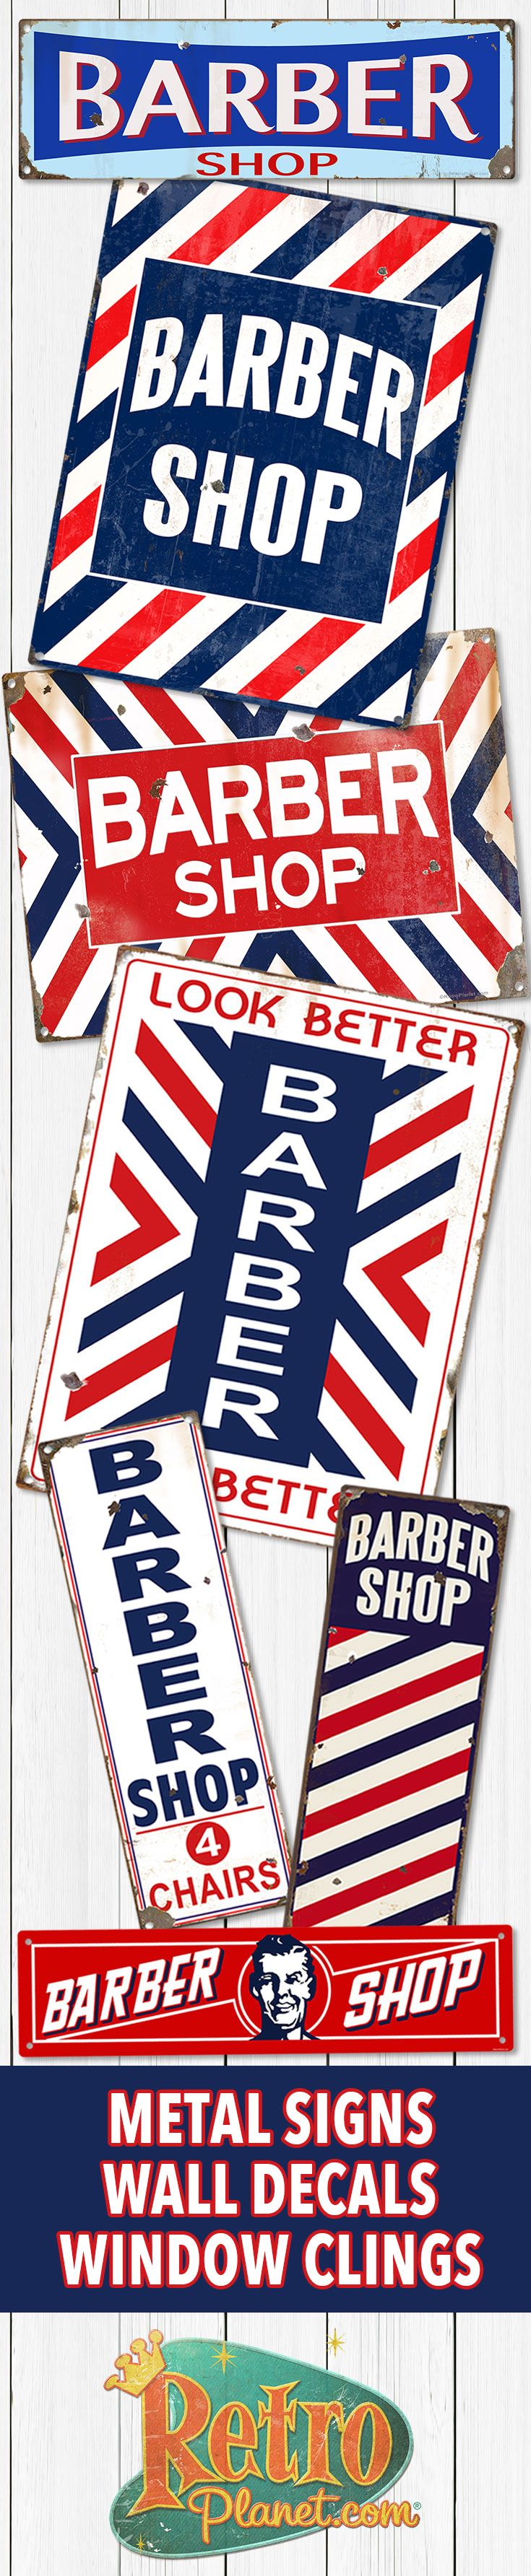 Barber shop pole distressed wall decal vintage style wall decor ebay - Old Style Barber Shop Decor That S Perfect For Your Bathroom Man Cave Or Business From Authentic William Marvy Barber Poles To Reproduction Metal Signs